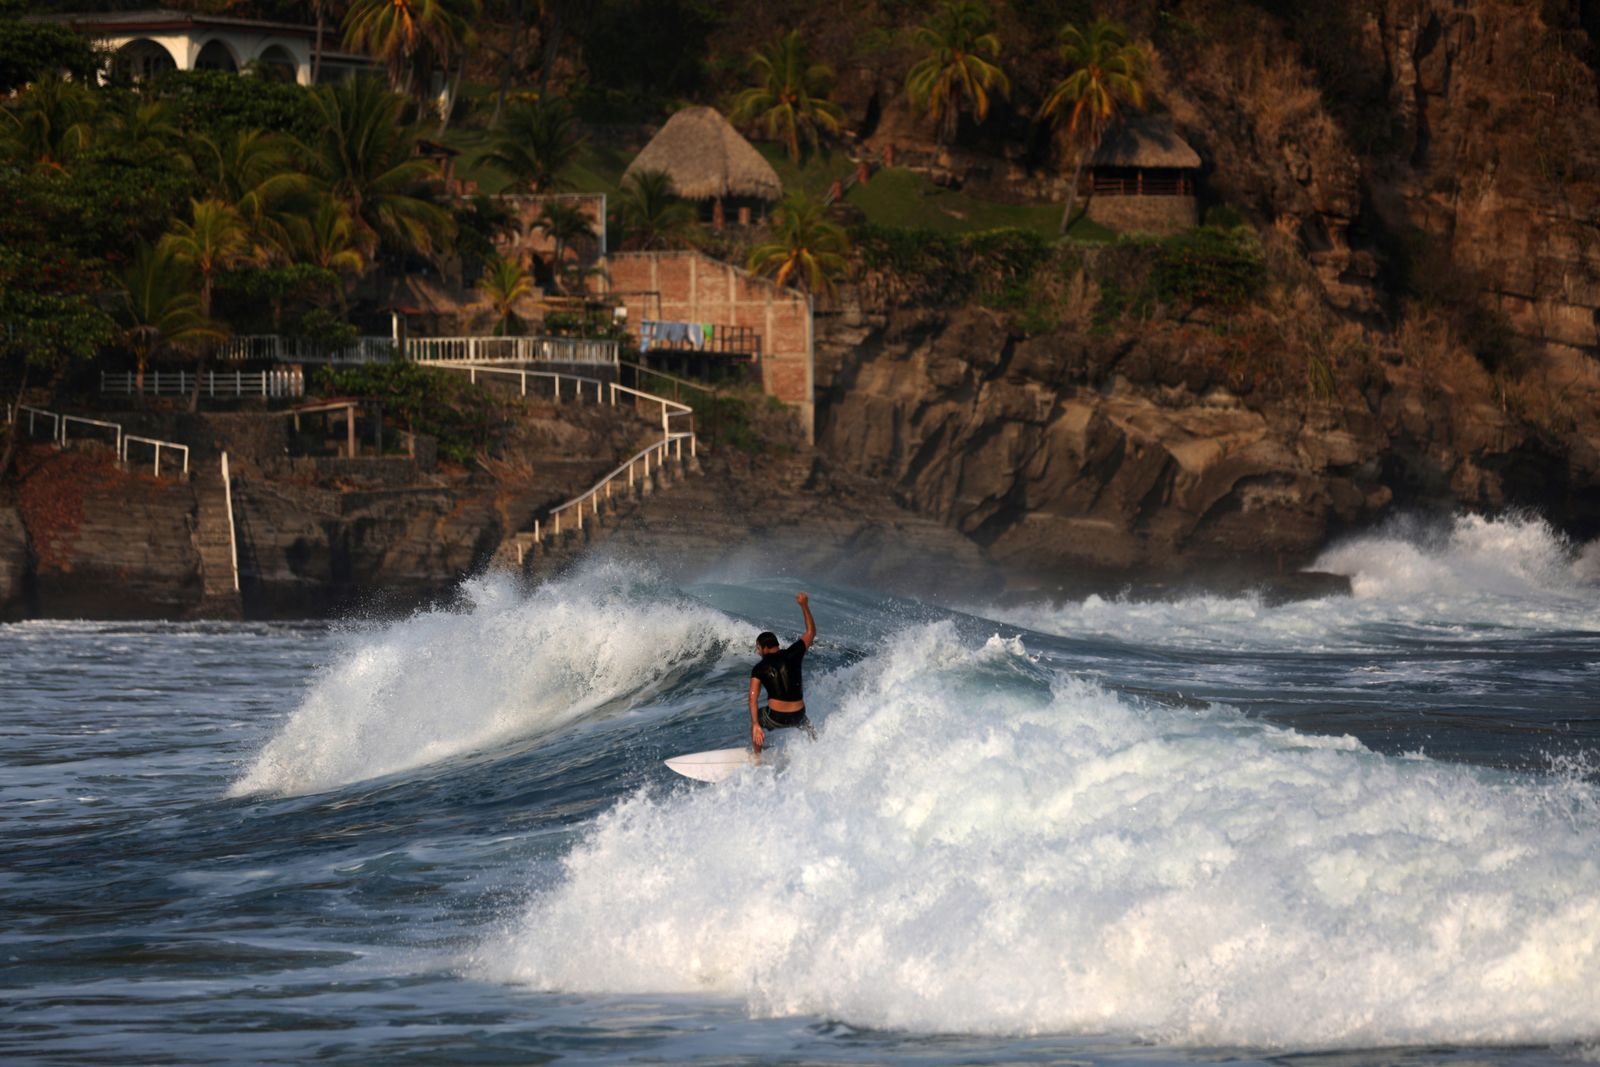 A surfer rides a wave at El Zonte Beach in Chiltuipa